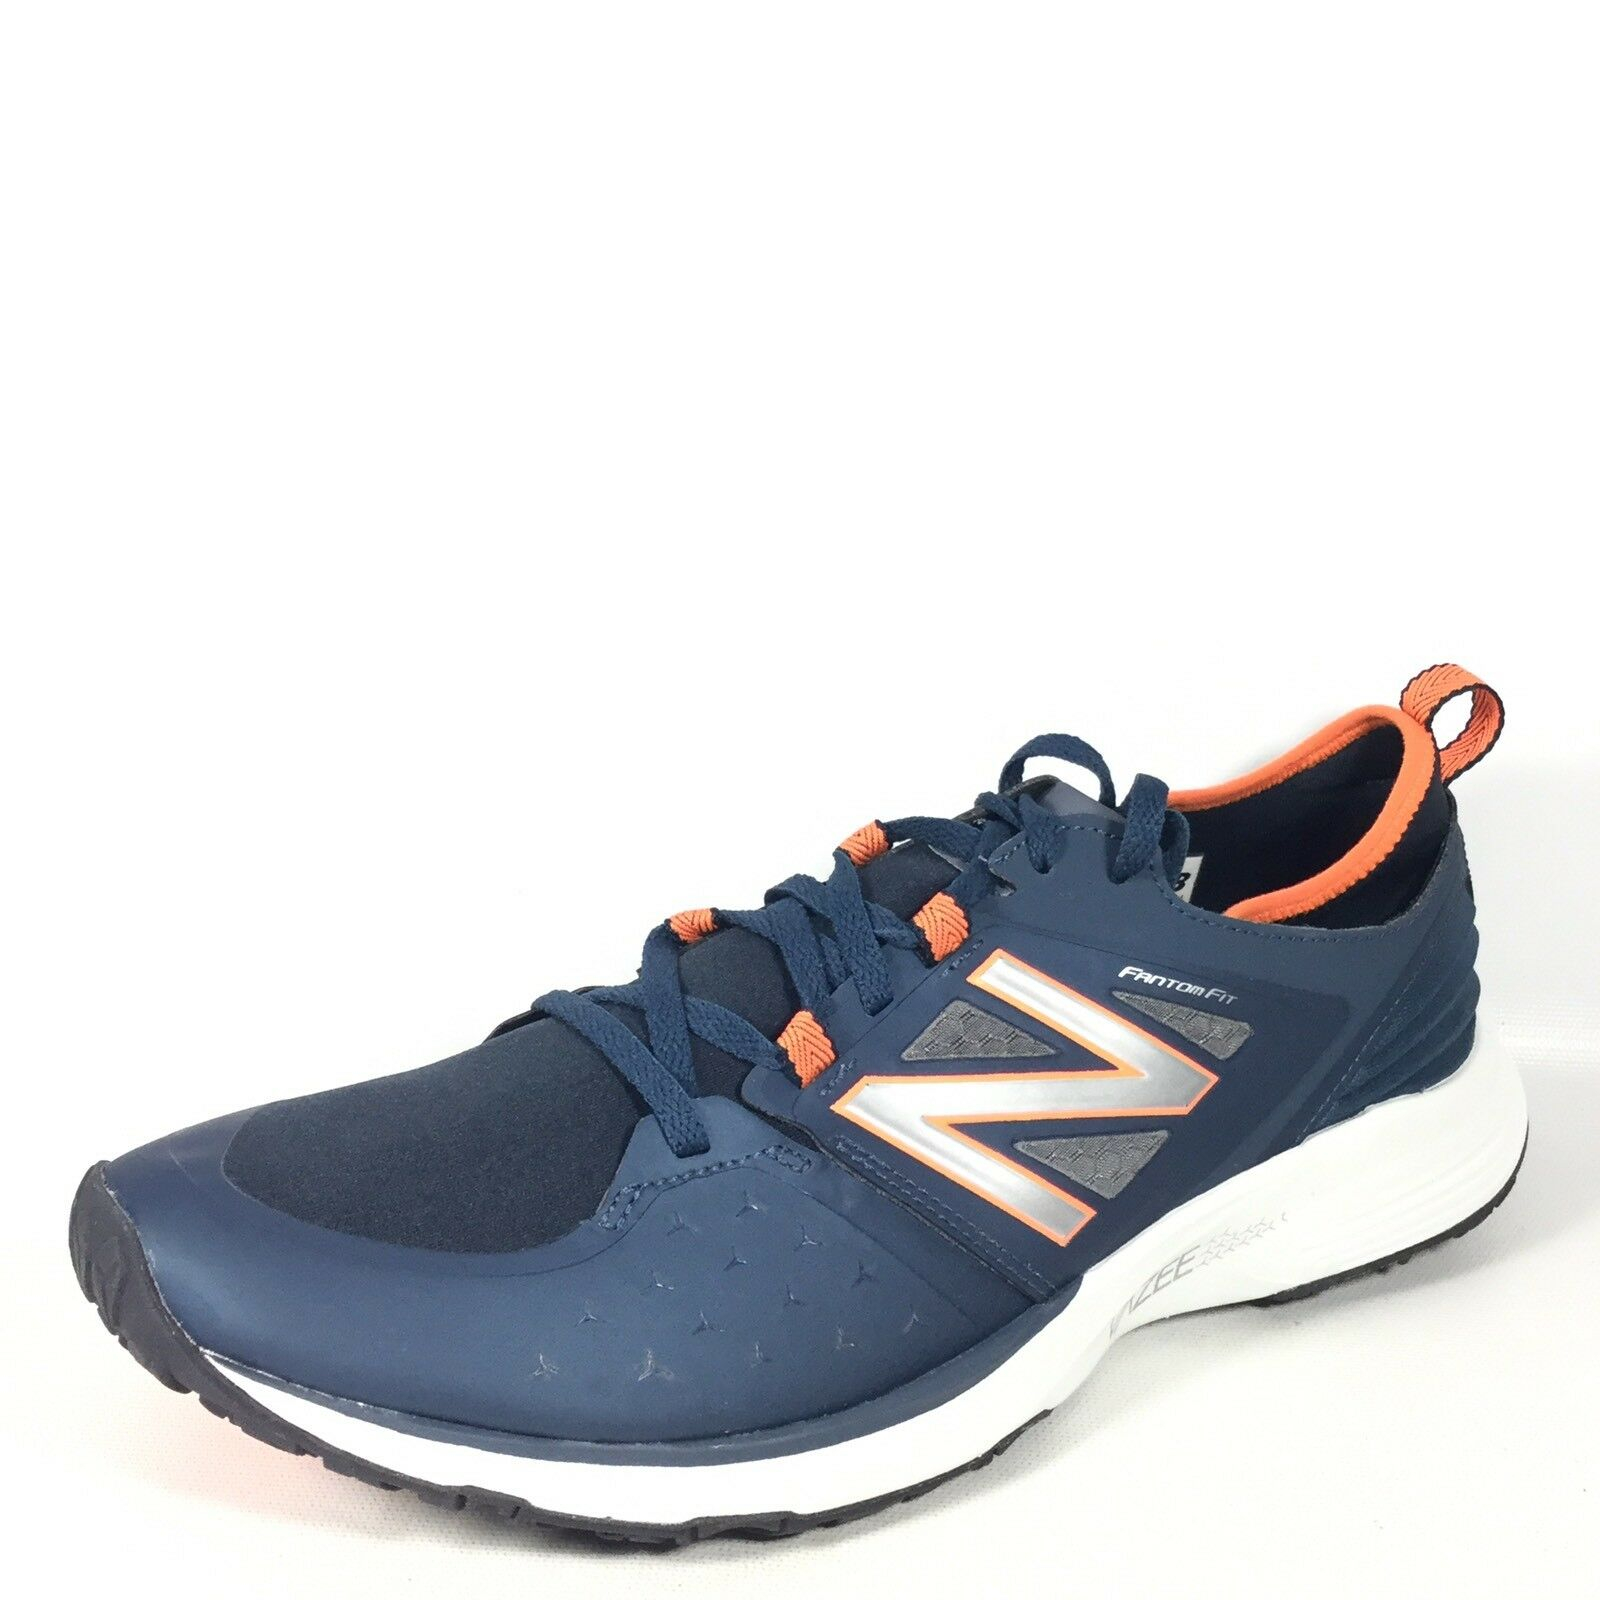 New Balance MXQIKGO Mens Size 13 D Navy  orange Training Sneakers.